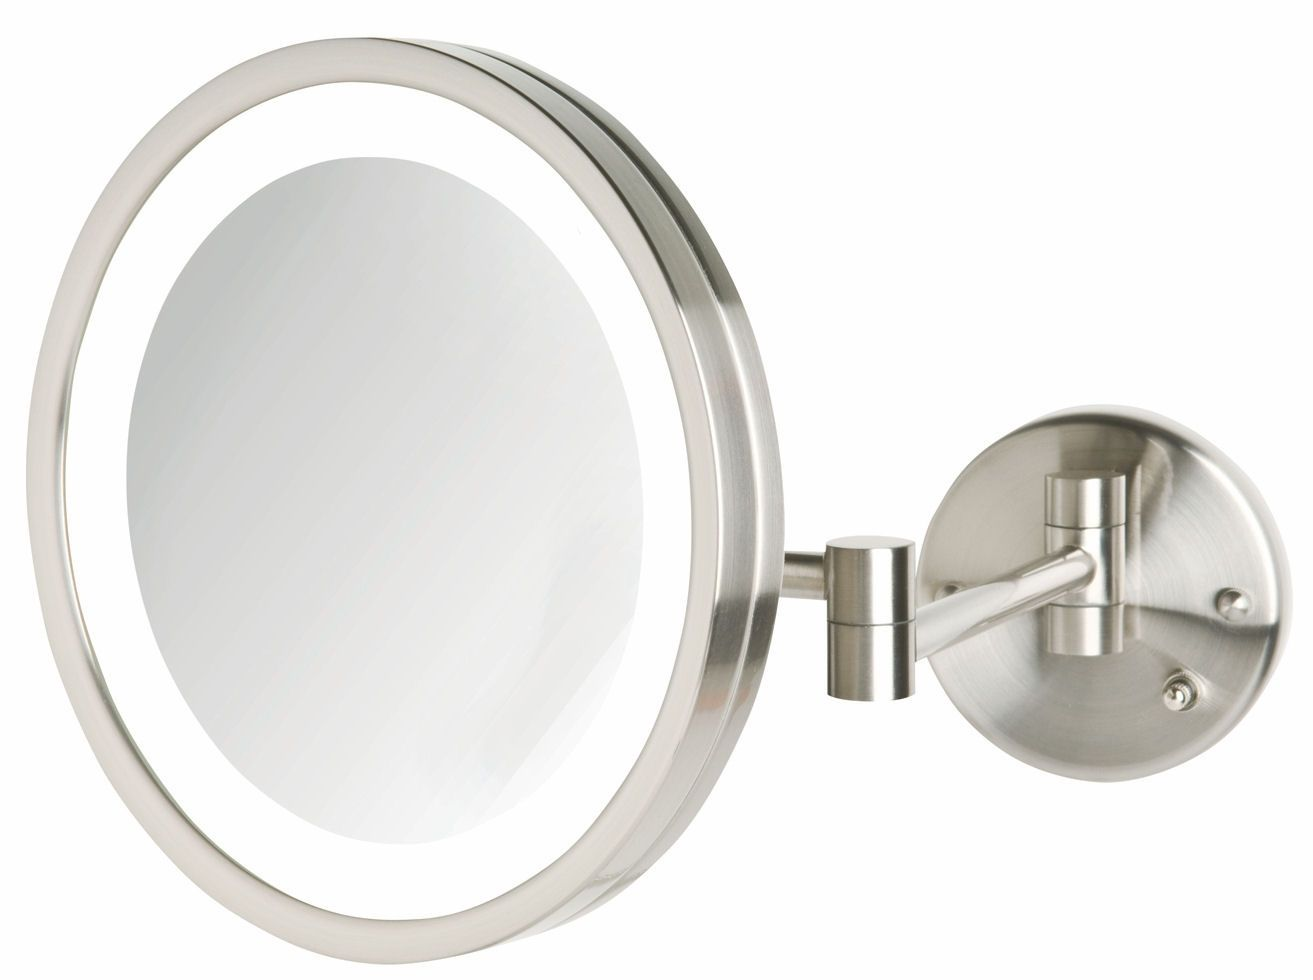 Wall Mounted Magnifying Mirror With Lighted 10x | http://drrw.us ...